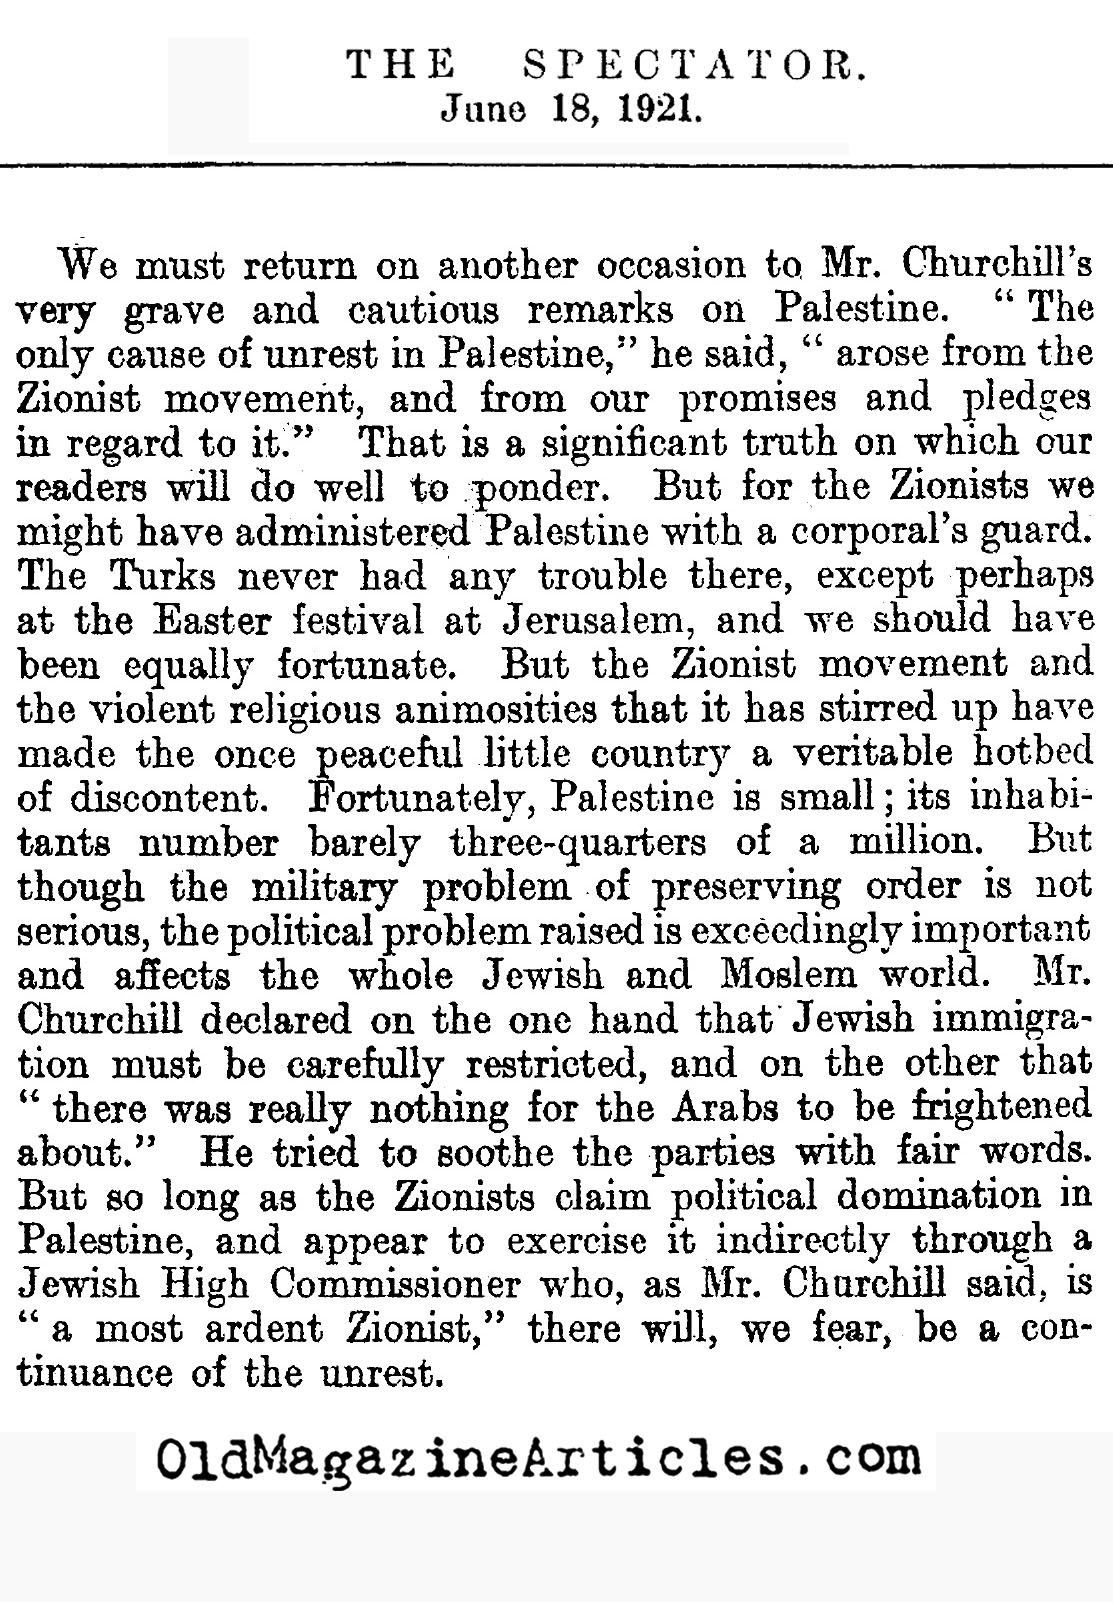 British Attempt to Prevent Jewish Growth of Palestine (The Spectator, 1921)